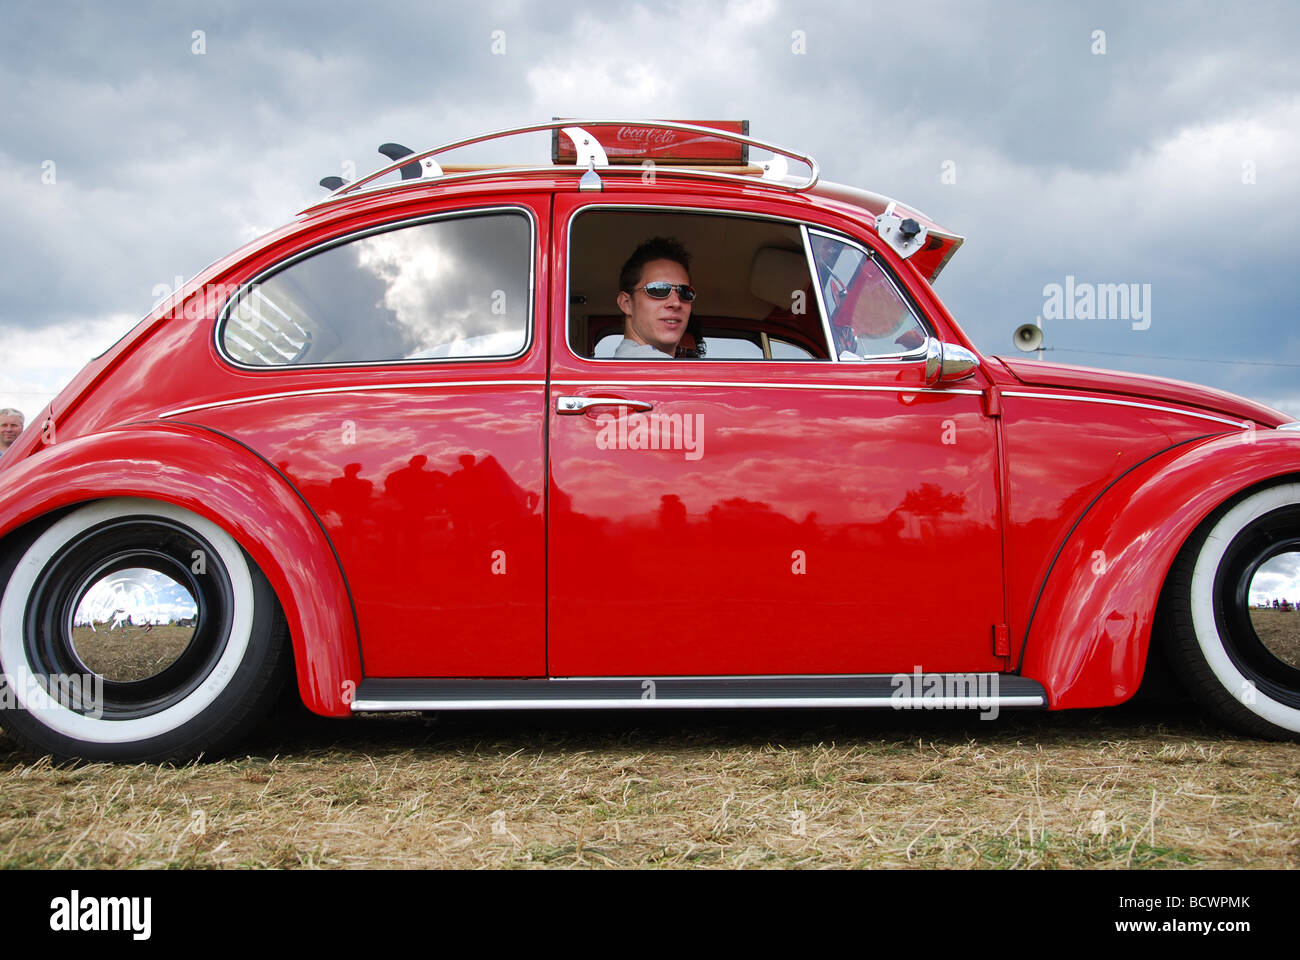 classic red vw beetle lowrider stock photo 25152867 alamy. Black Bedroom Furniture Sets. Home Design Ideas